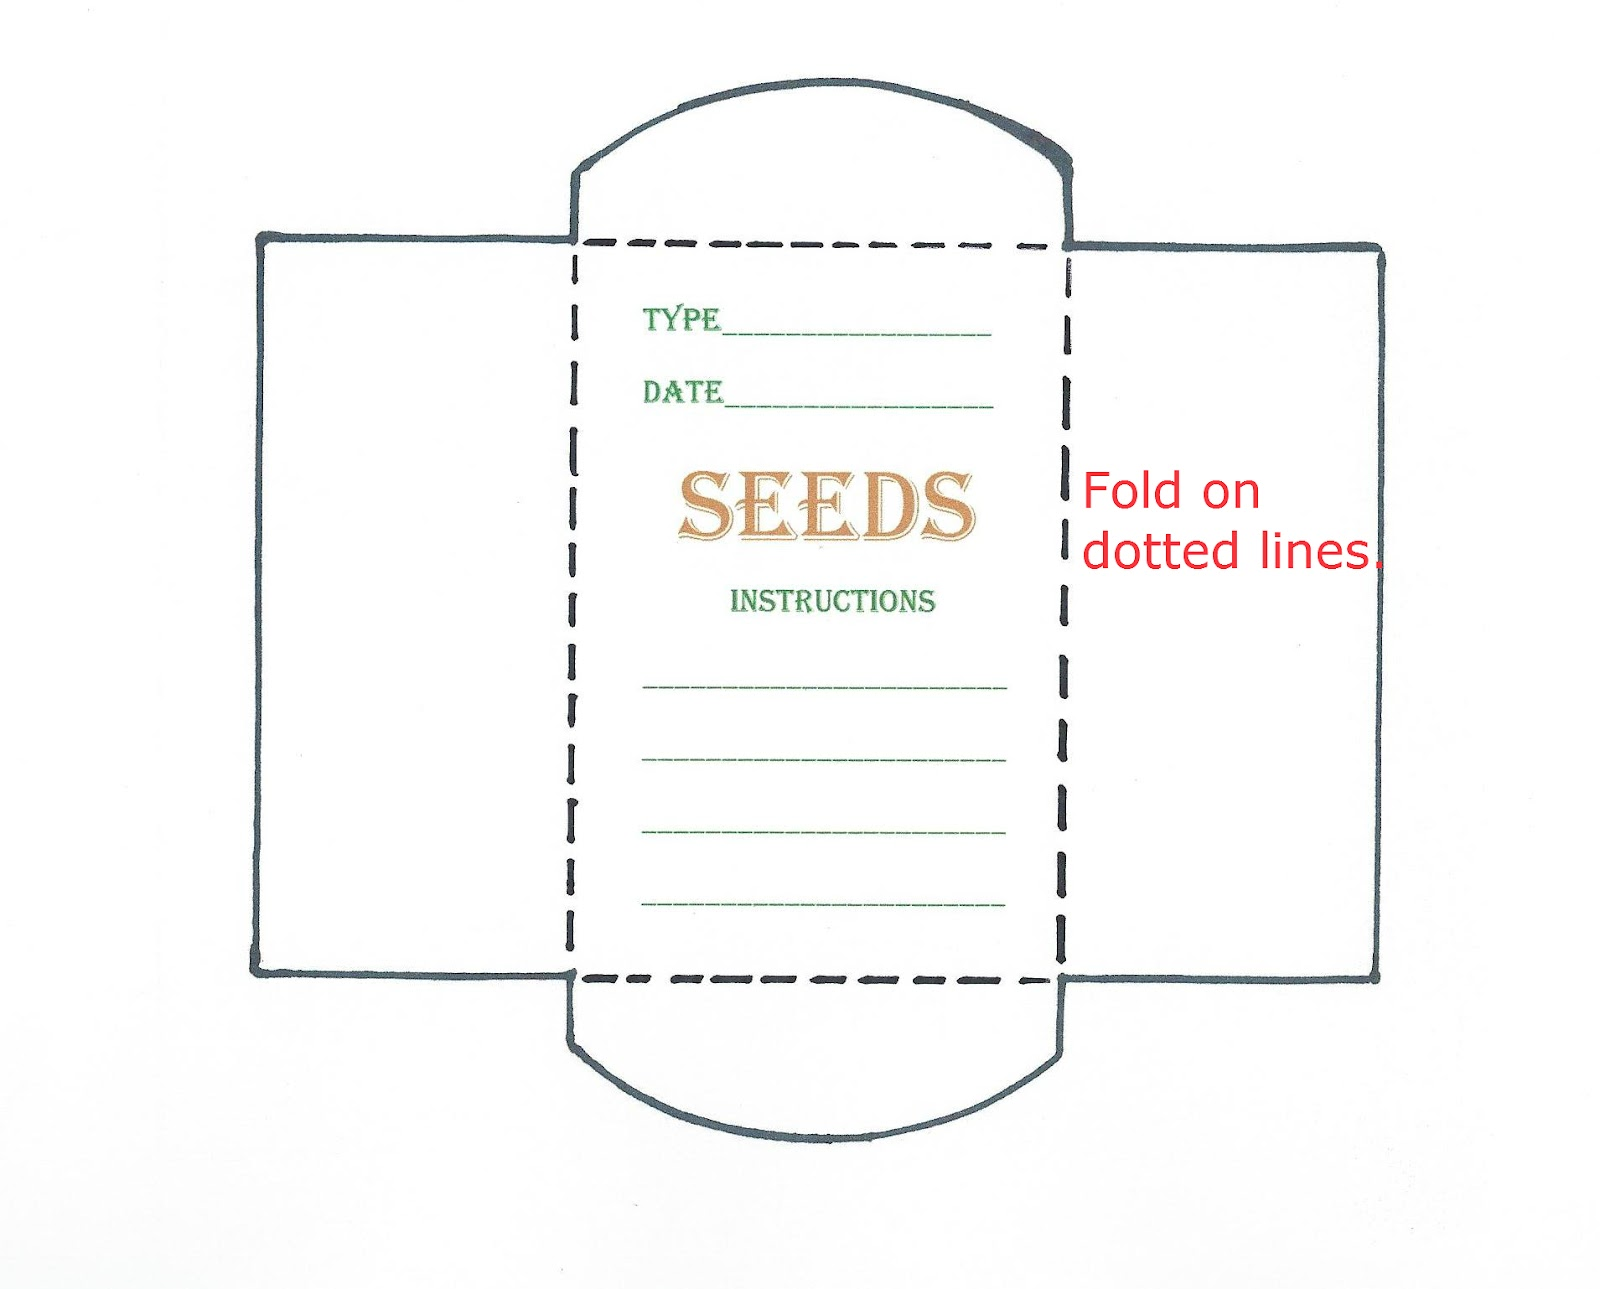 blank seed packet template - seed packet template playbestonlinegames